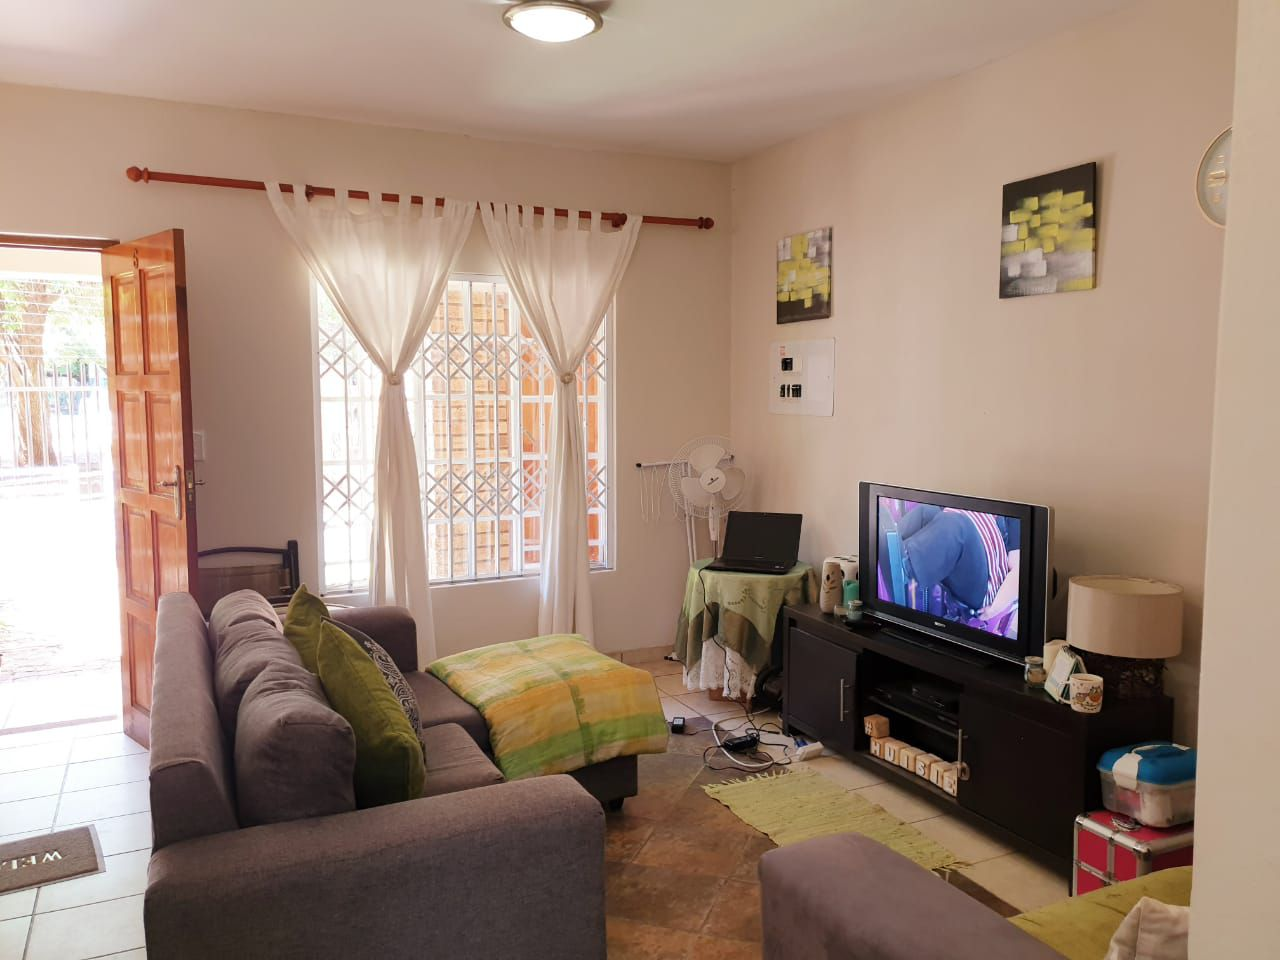 Apartment in Bult - WhatsApp Image 2019-10-29 at 15.32.16.jpeg